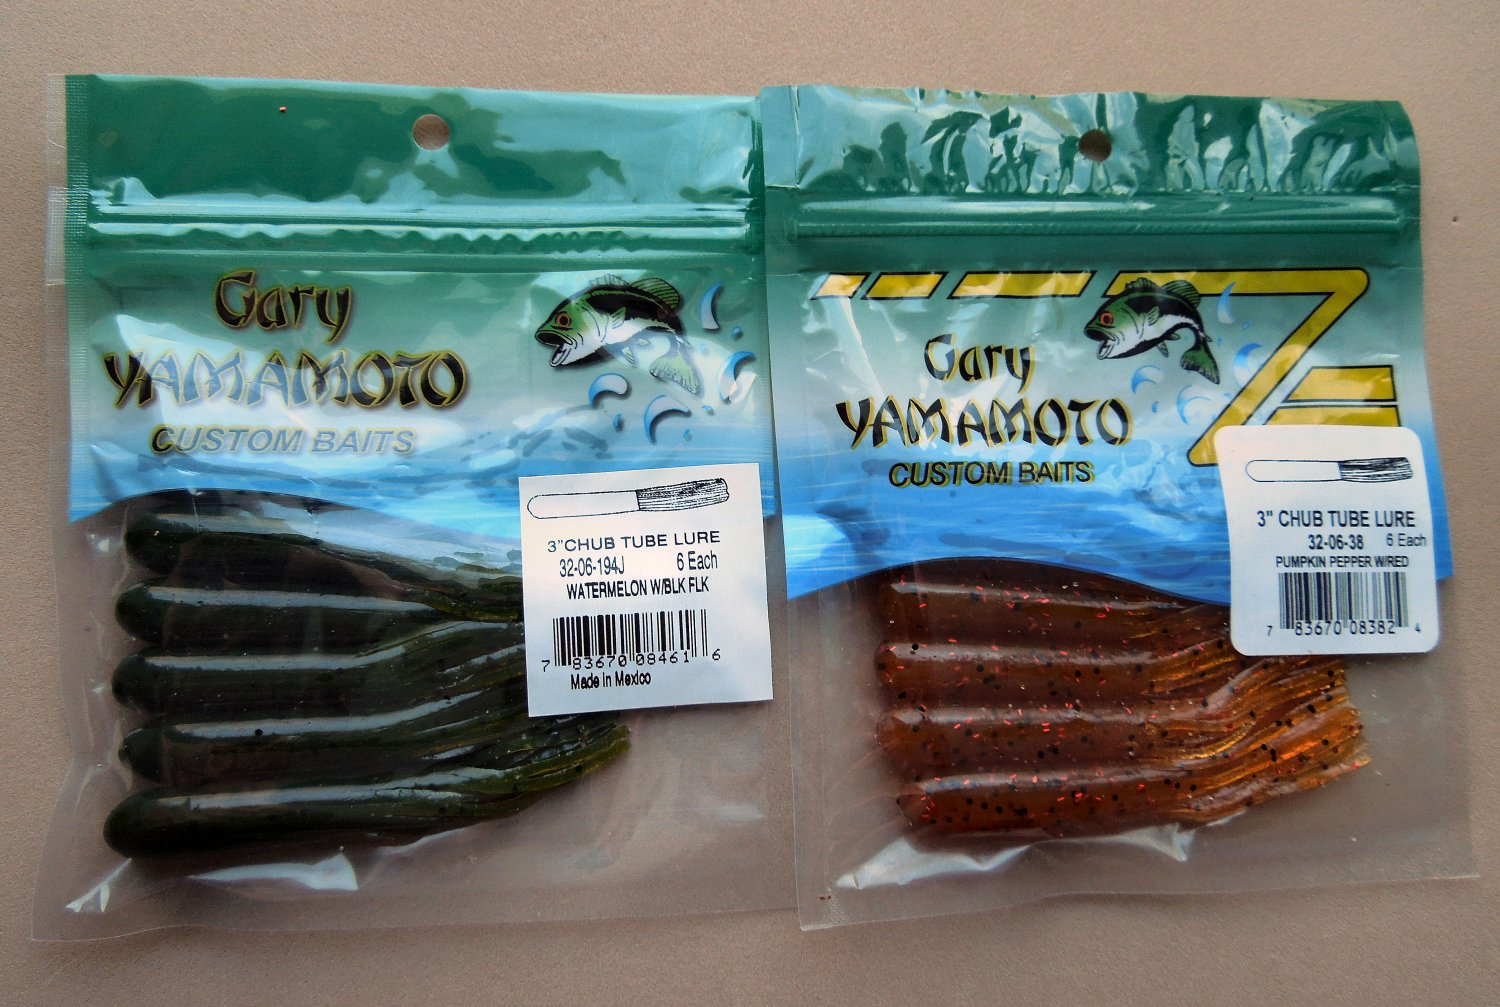 "Yamamoto 3"" Chub Tube 6 Per Pack x 2 Different Colors....32-06-194J and 32-06-38"